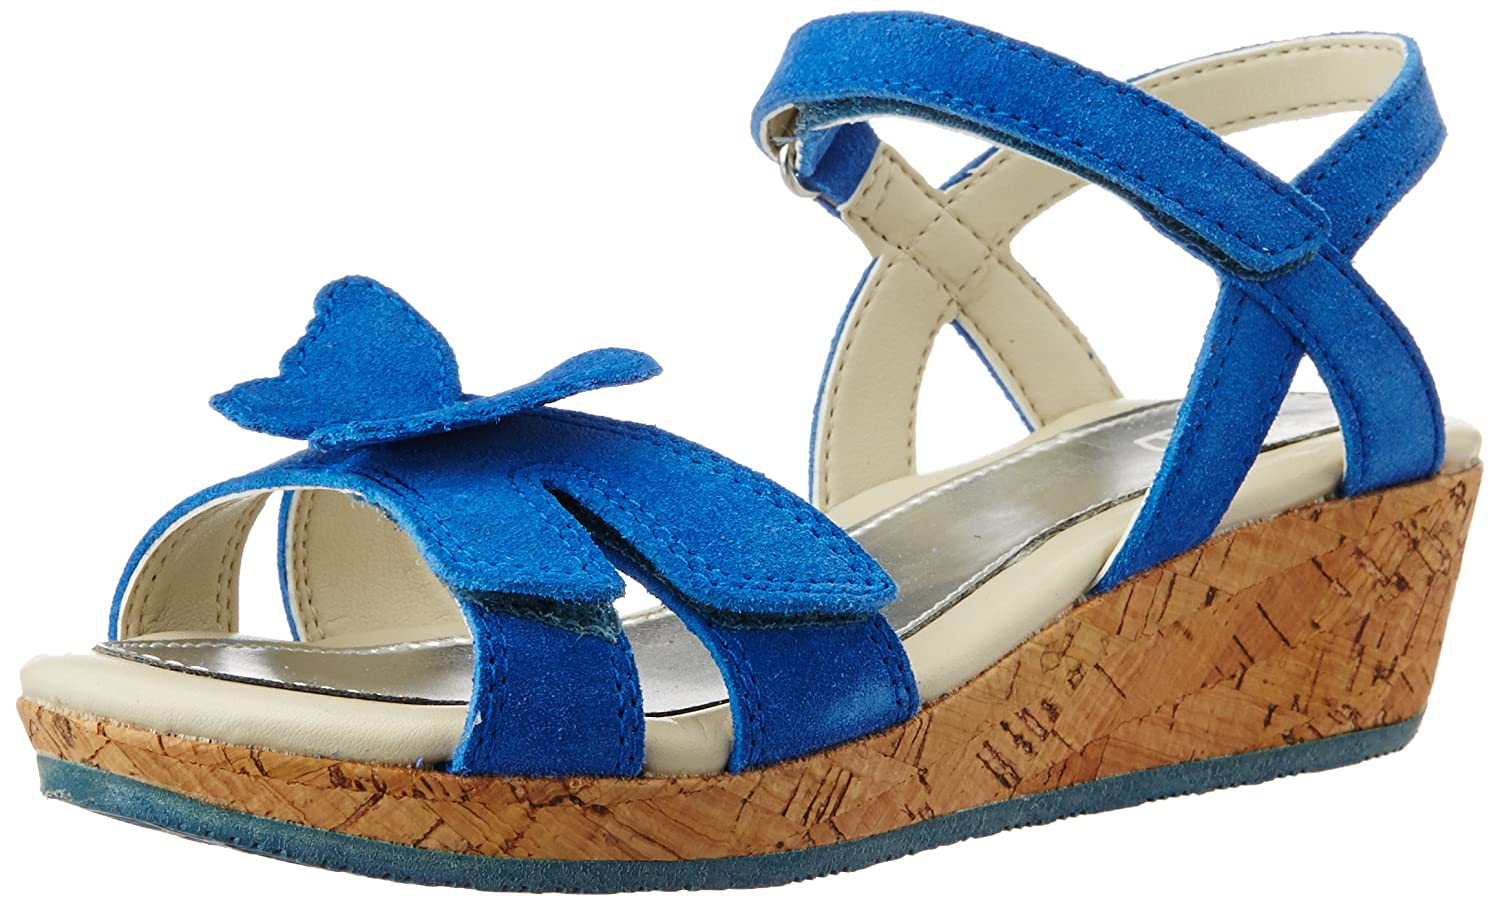 57aa7753990 Clarks Girl s Harpy Wings Fashion Sandals  Buy Online at Low Prices in  India - Amazon.in